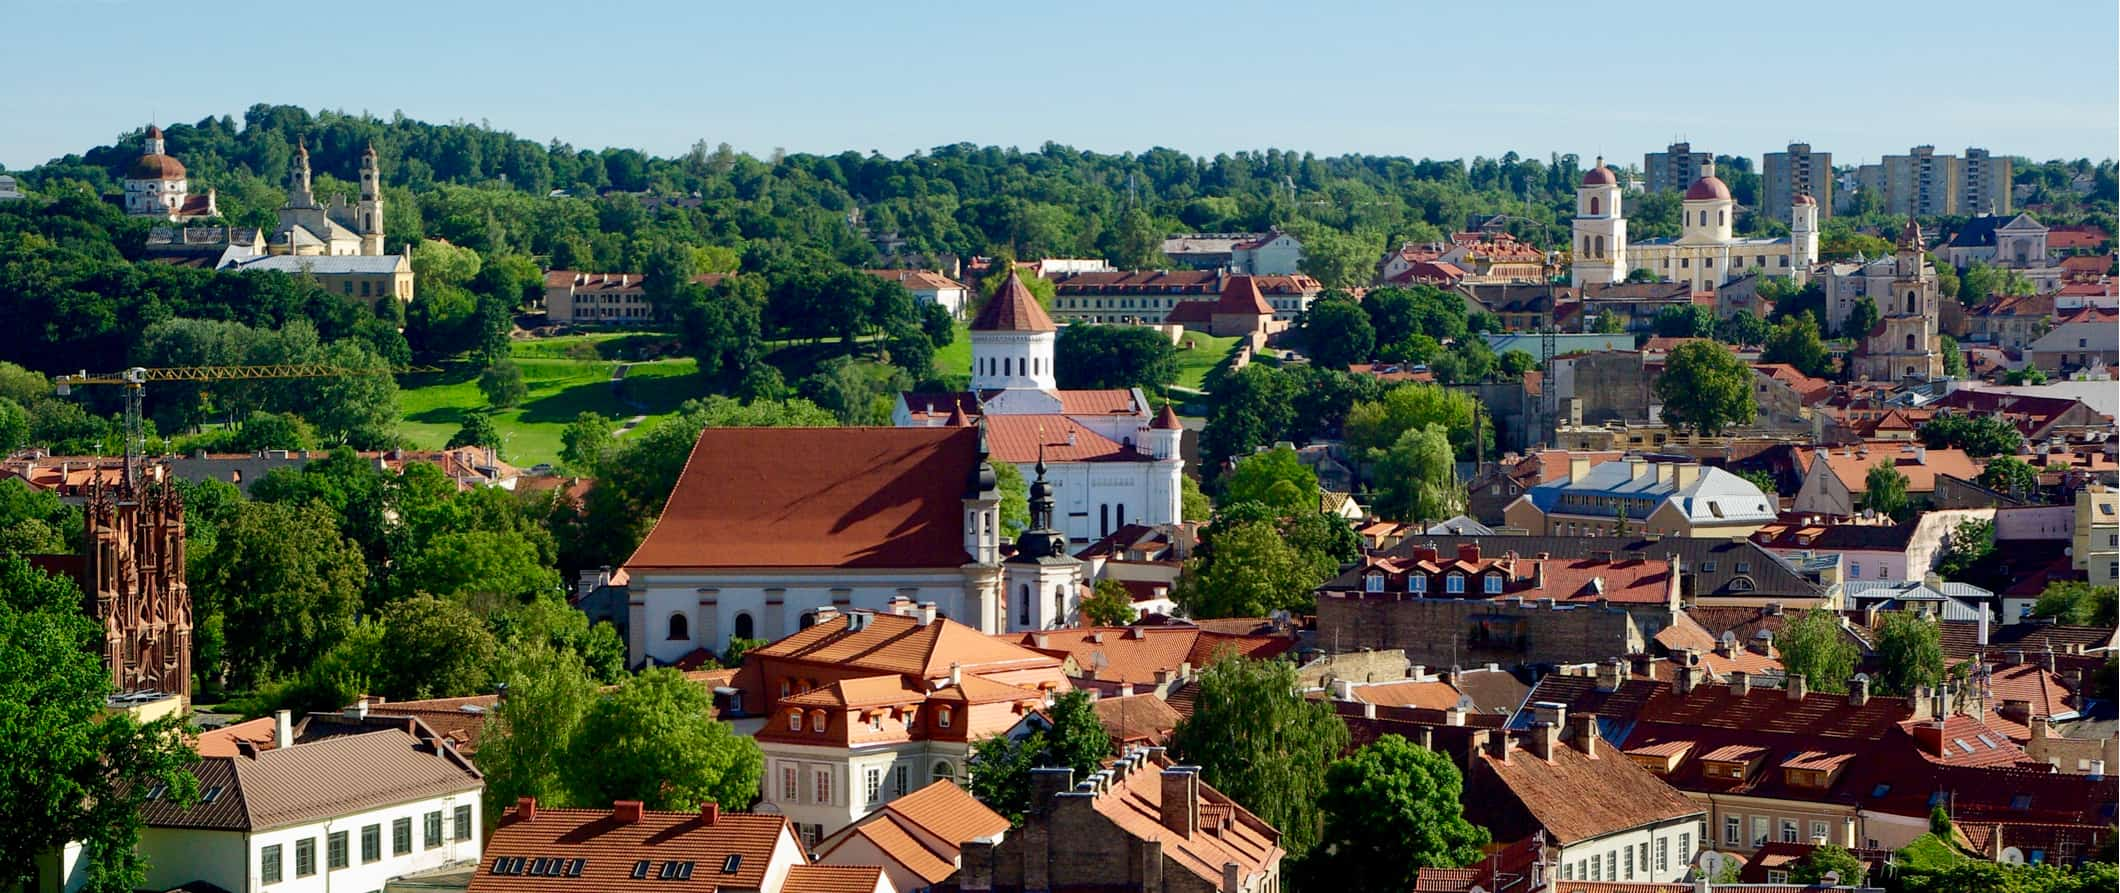 Historic buildings and forests in Lithuania